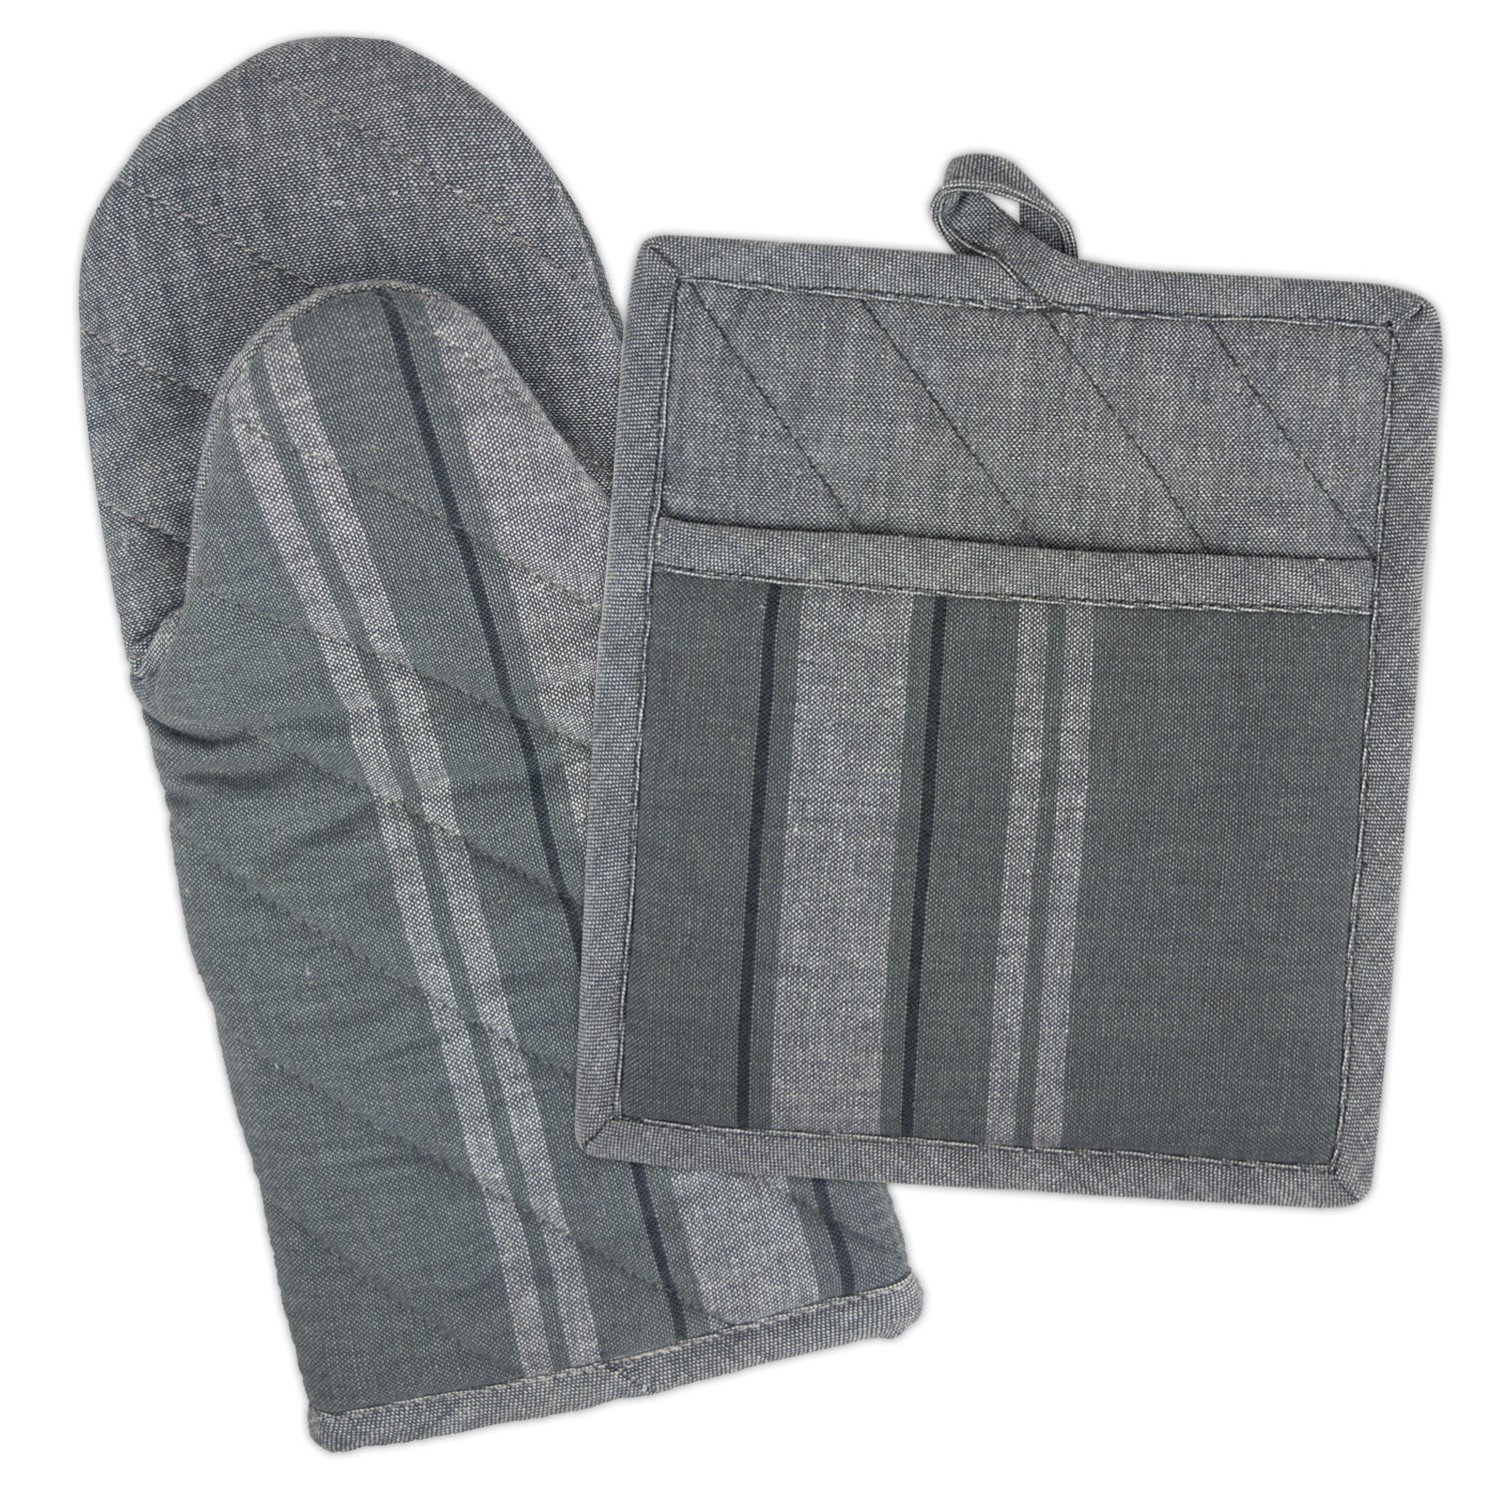 DII 100% Cotton, Machine Washable, Everyday Kitchen Basic, Farmhouse, Country French Stripe Oven Mitt and Pocket Mitt/Pot Holder Gift Set, Chambray Gray